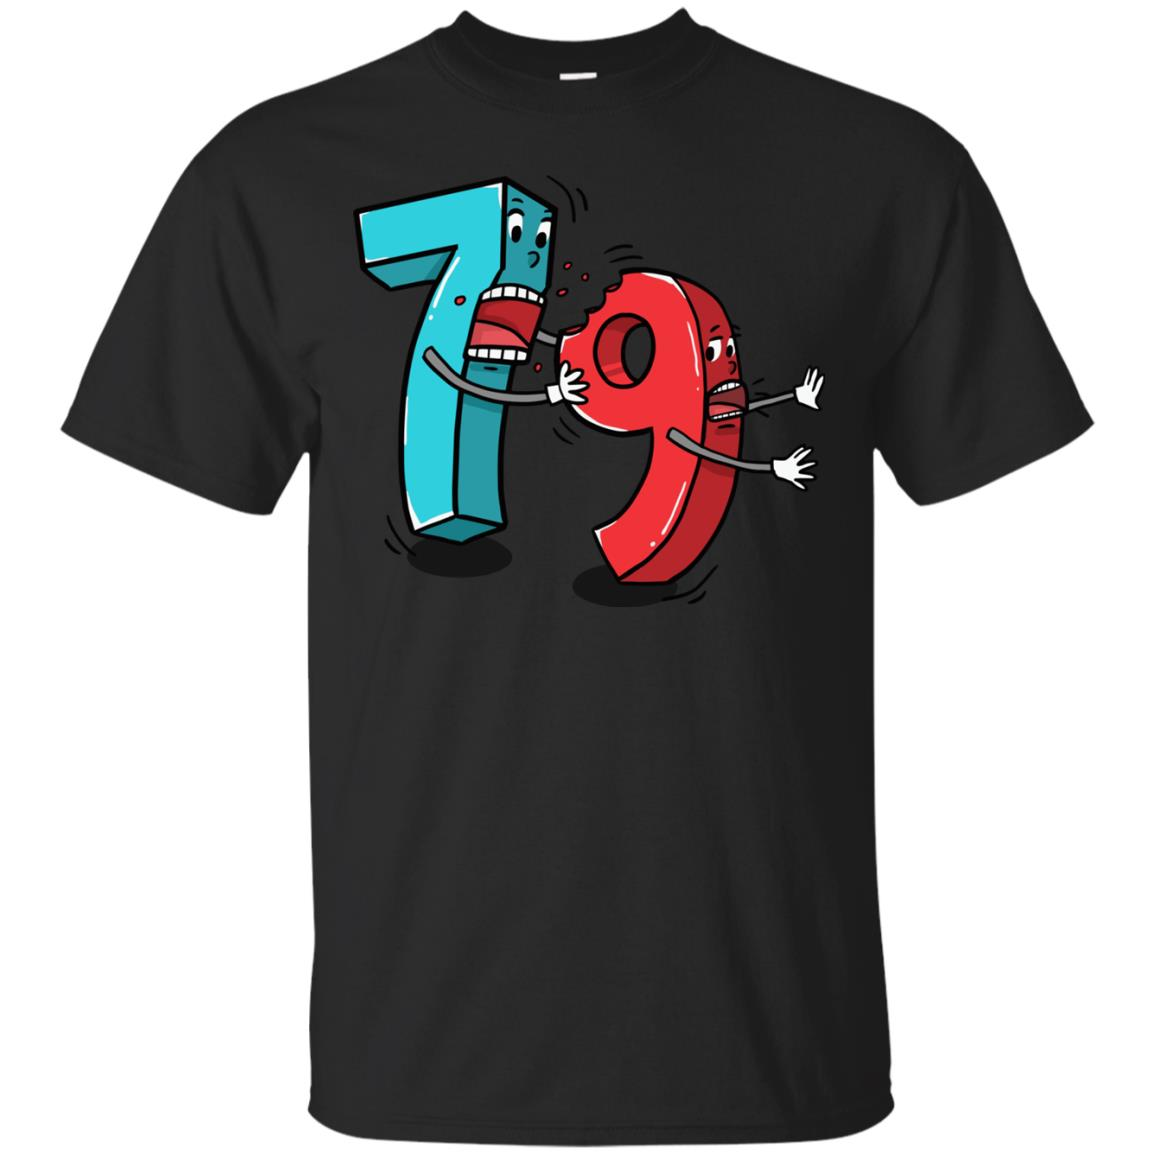 7 ate 9 Funny Math T Shirt